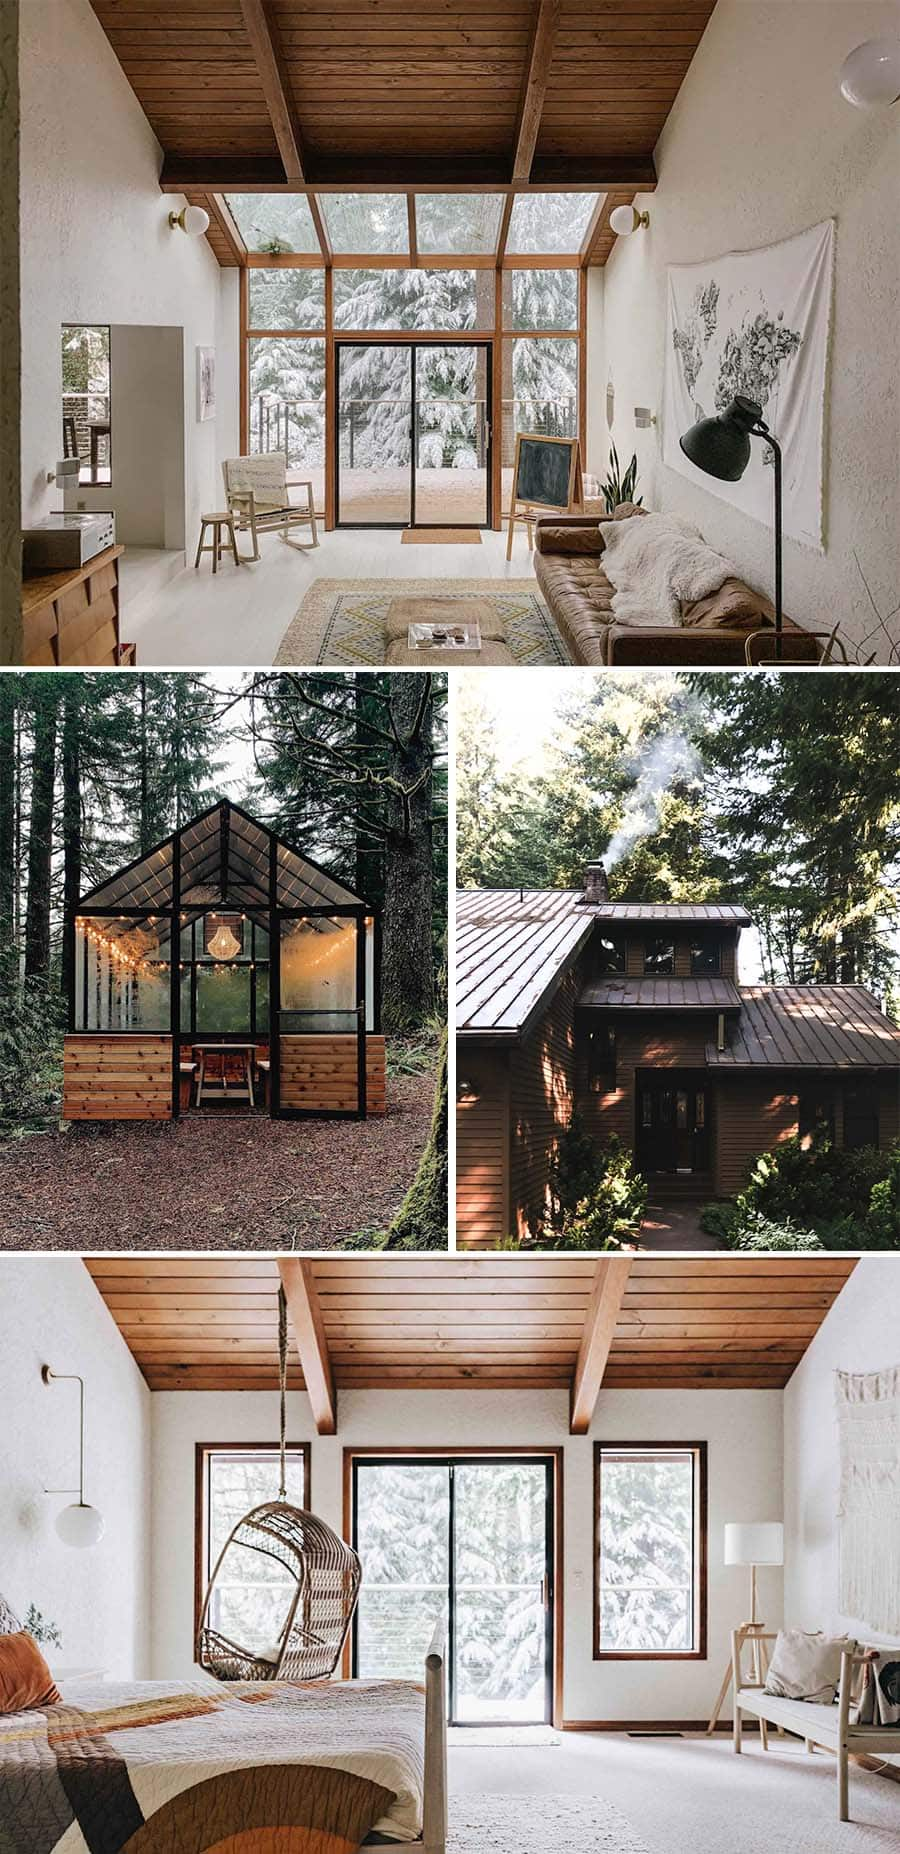 The Woodlands House beautiful cabin in the woods